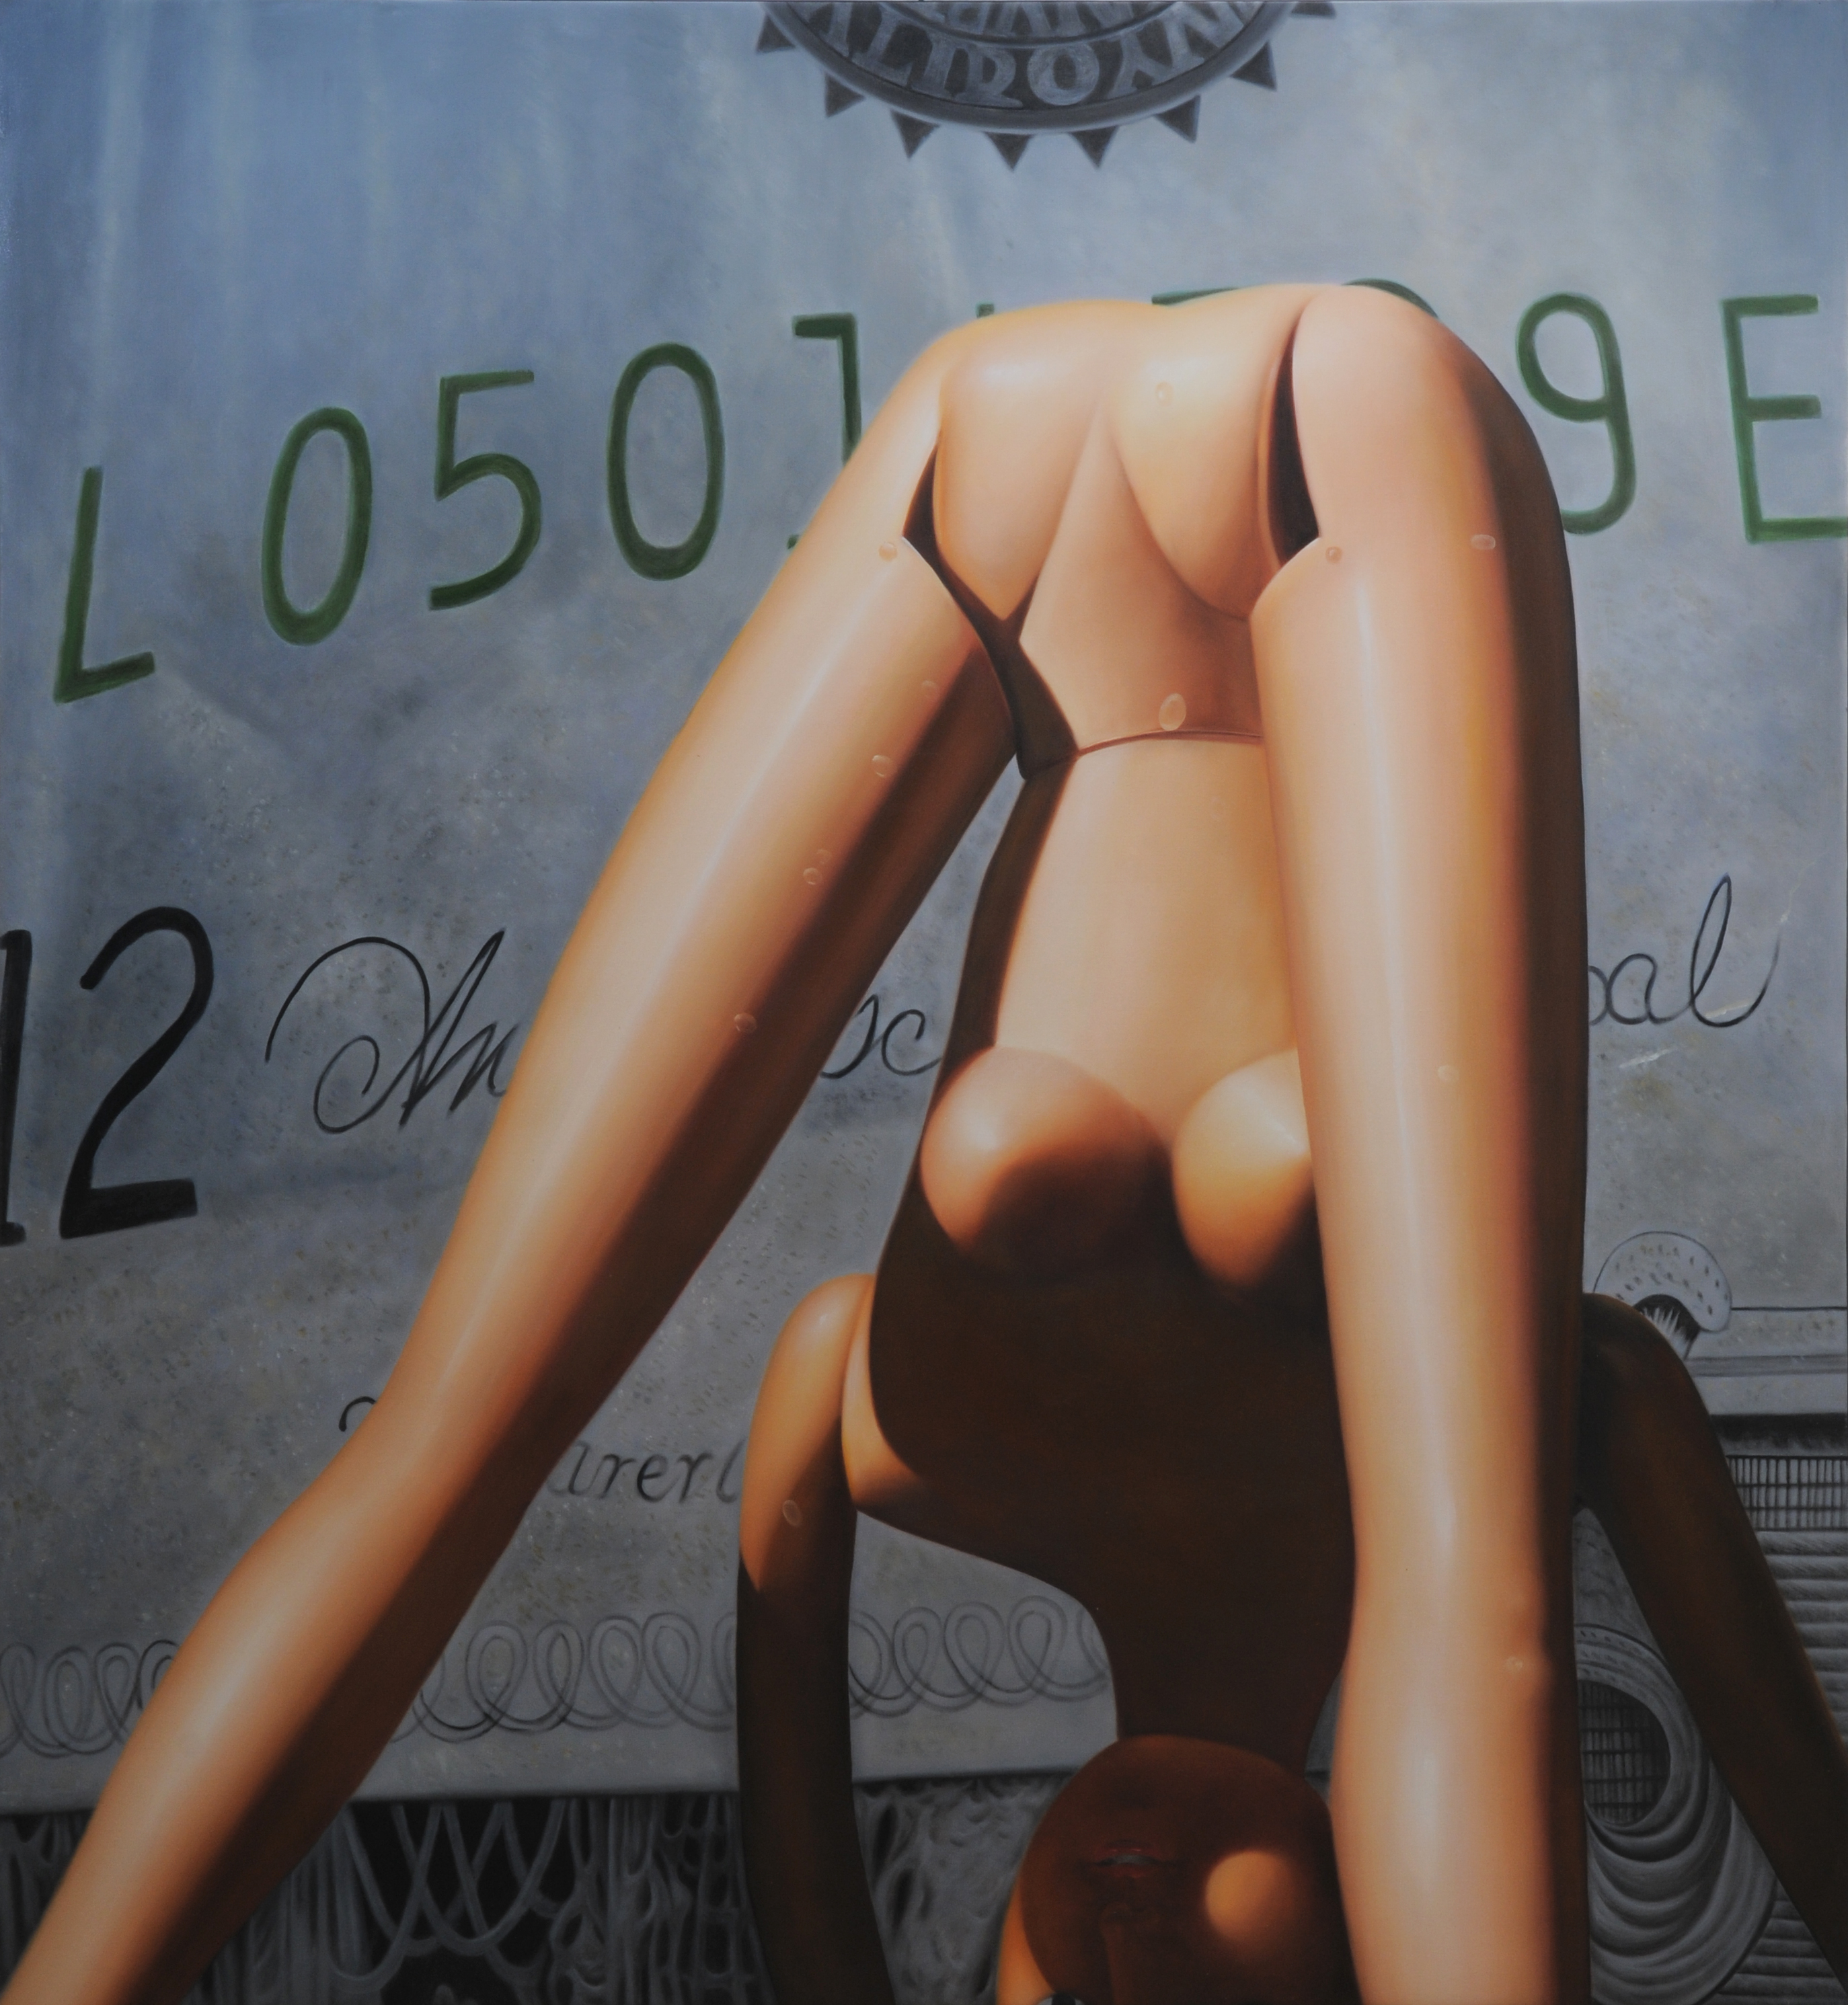 """L0501"" Oil on Canvas, 2008 Oil on canvas 59 1/10 × 54 3/10 in 150 × 138 cm"